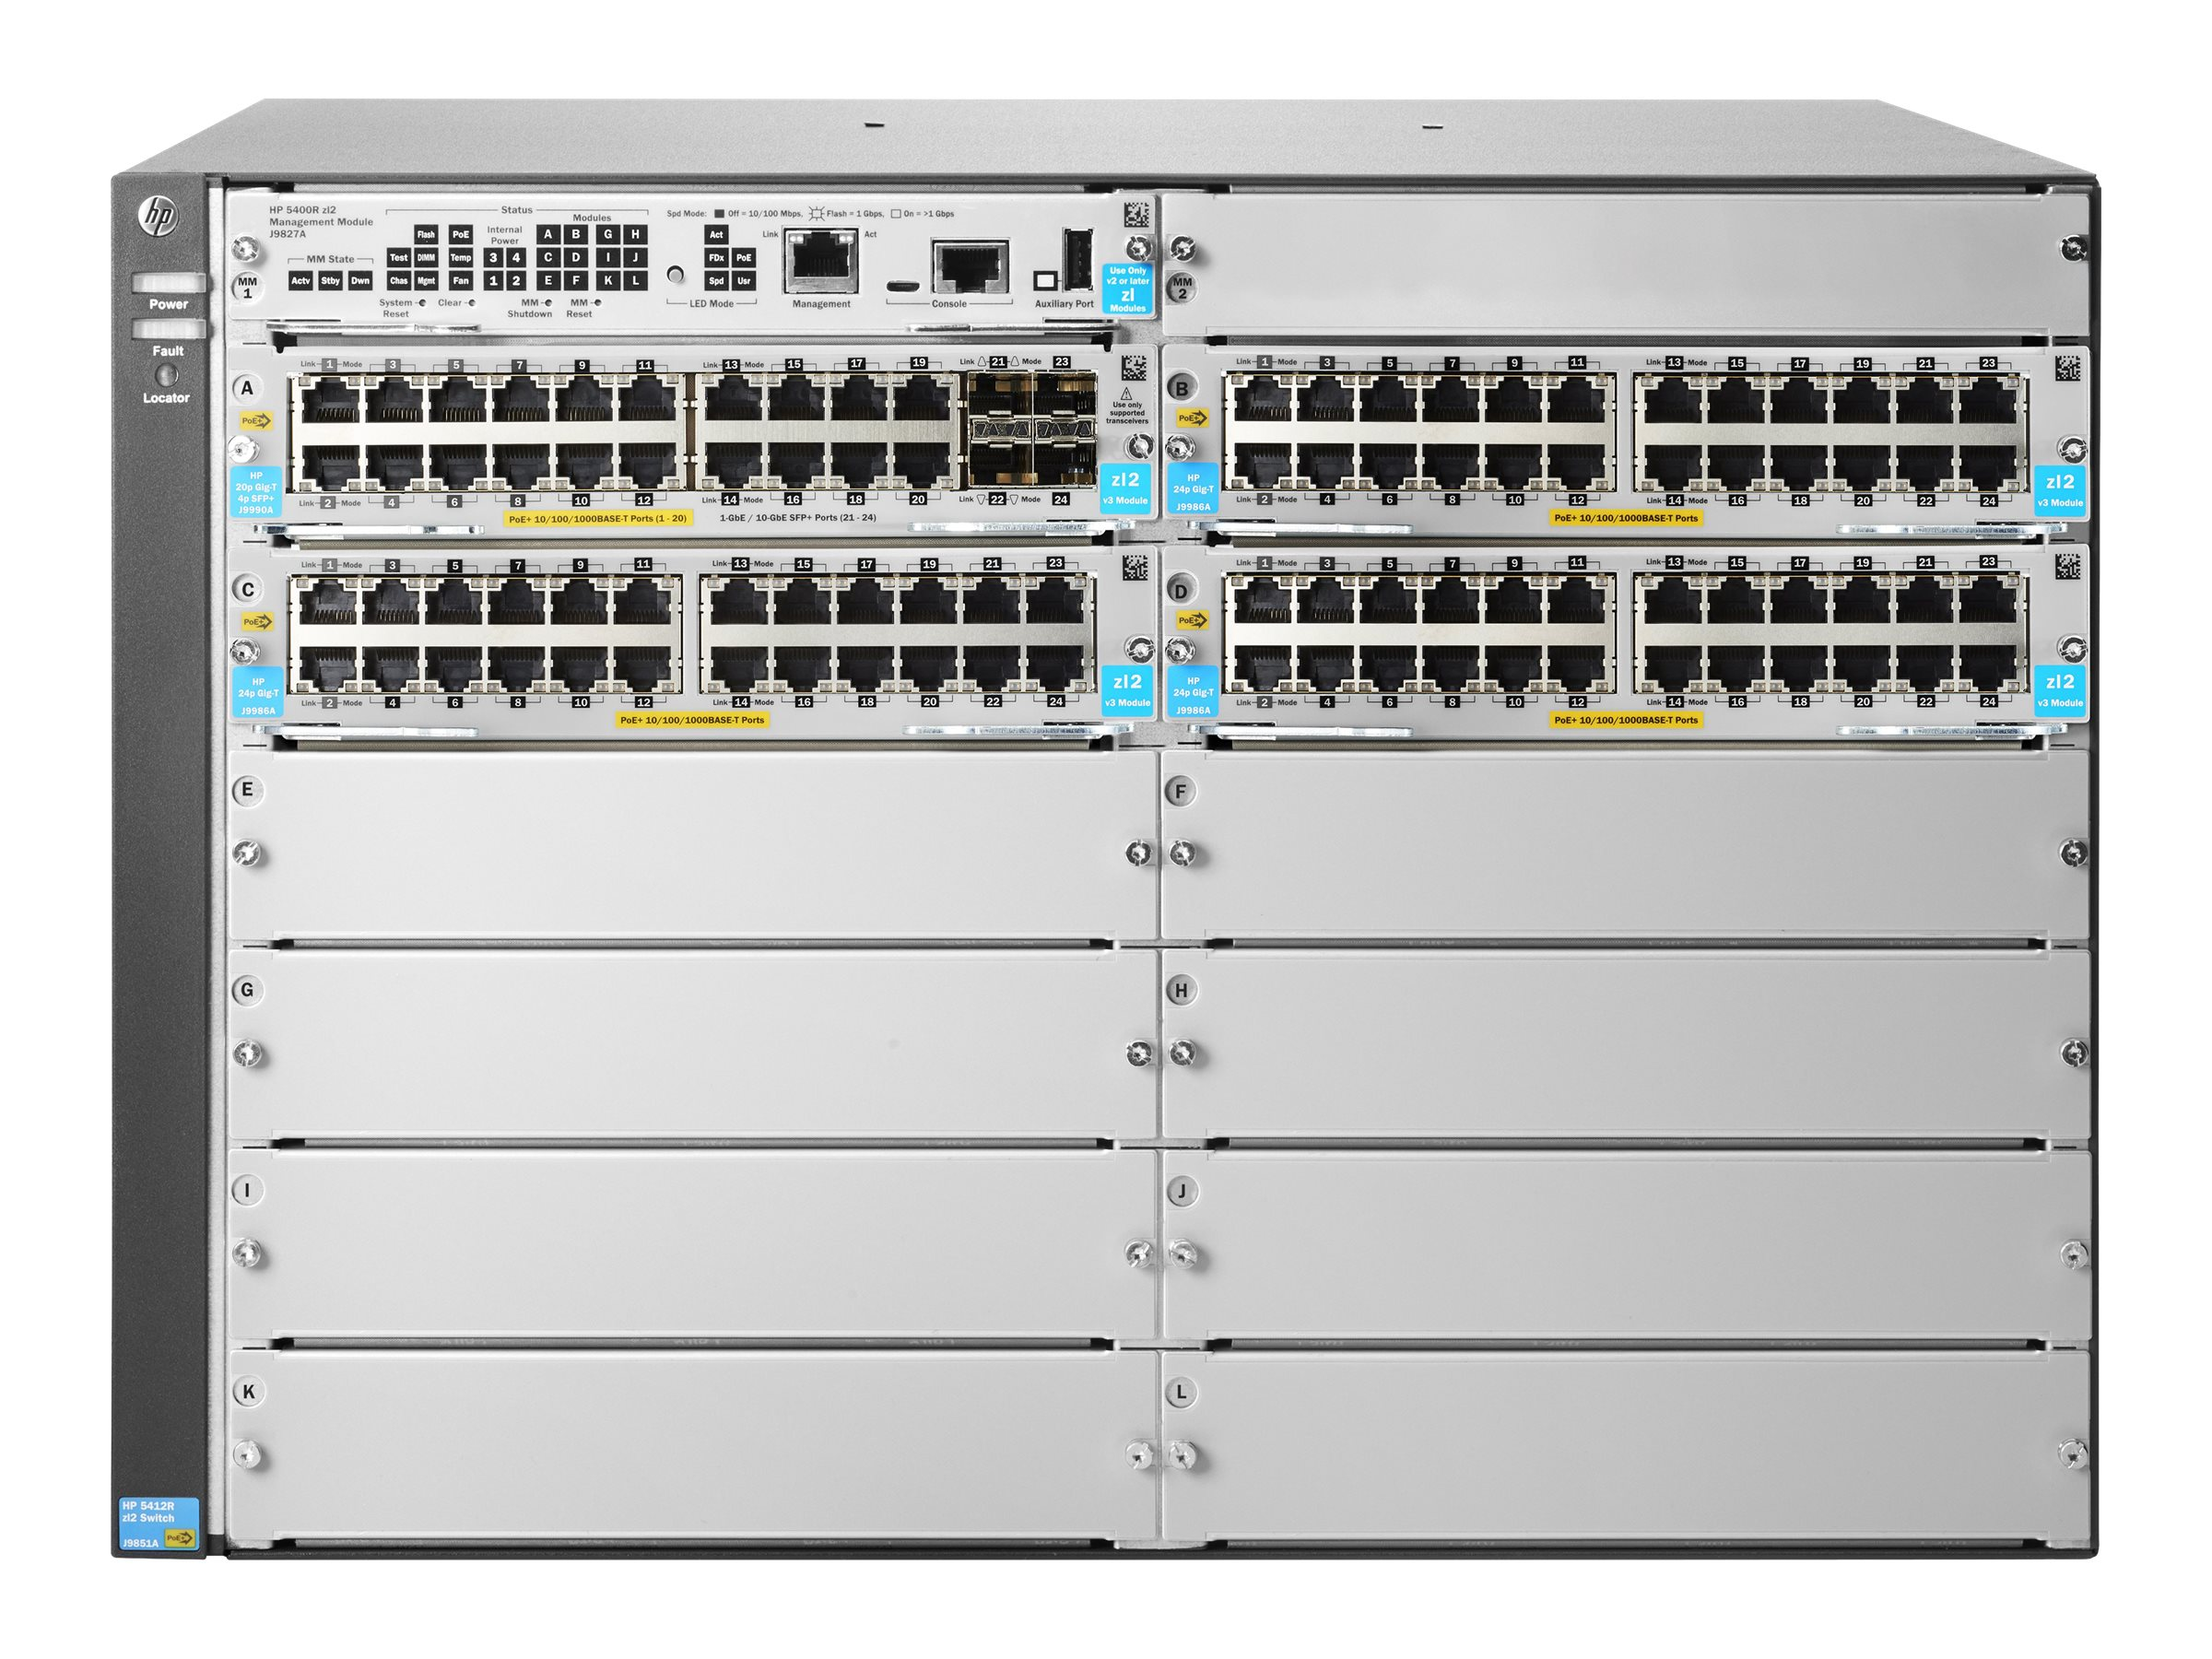 HPE 5412R 92xGT POE+ 4xSFP+ V3 ZL2 Switch, JL001A, 20020367, Network Switches